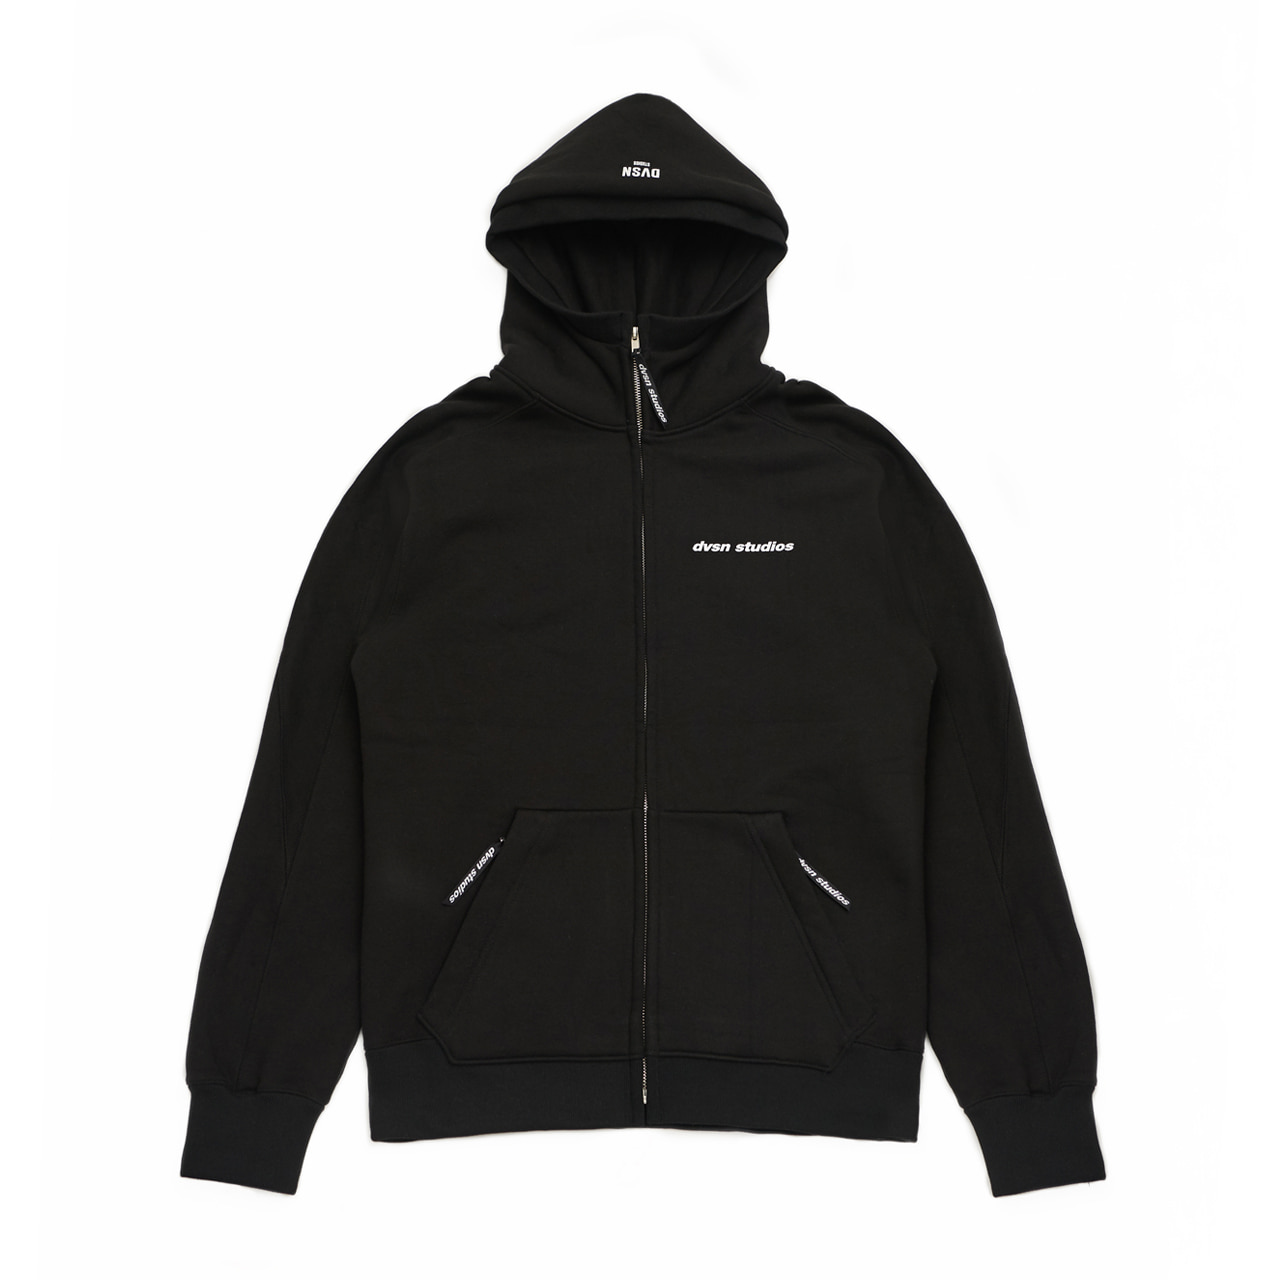 DVSN STUDIOS zip neck hood _ Black